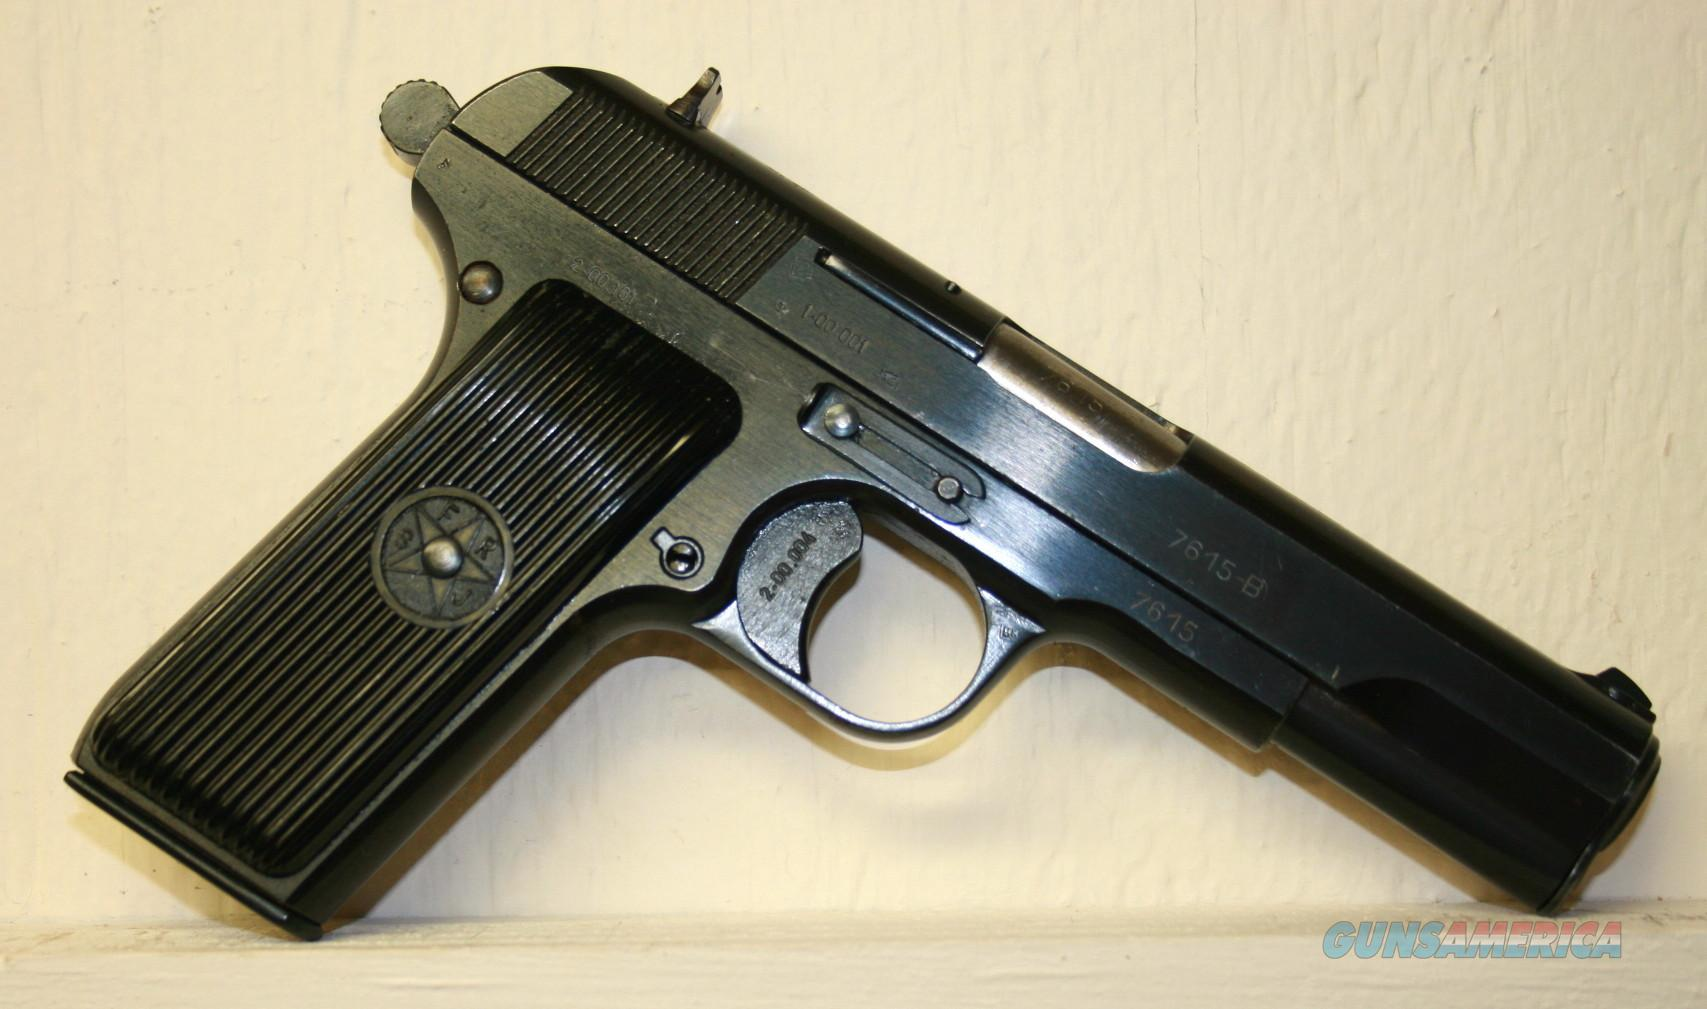 Px Svolochi Mp furthermore Case History X Mm Tokarev S also X Machinegunammo X in addition Way also Mm C Mm Sig Mm Sw Gap Ae. on 7 62x25mm tokarev cartridge